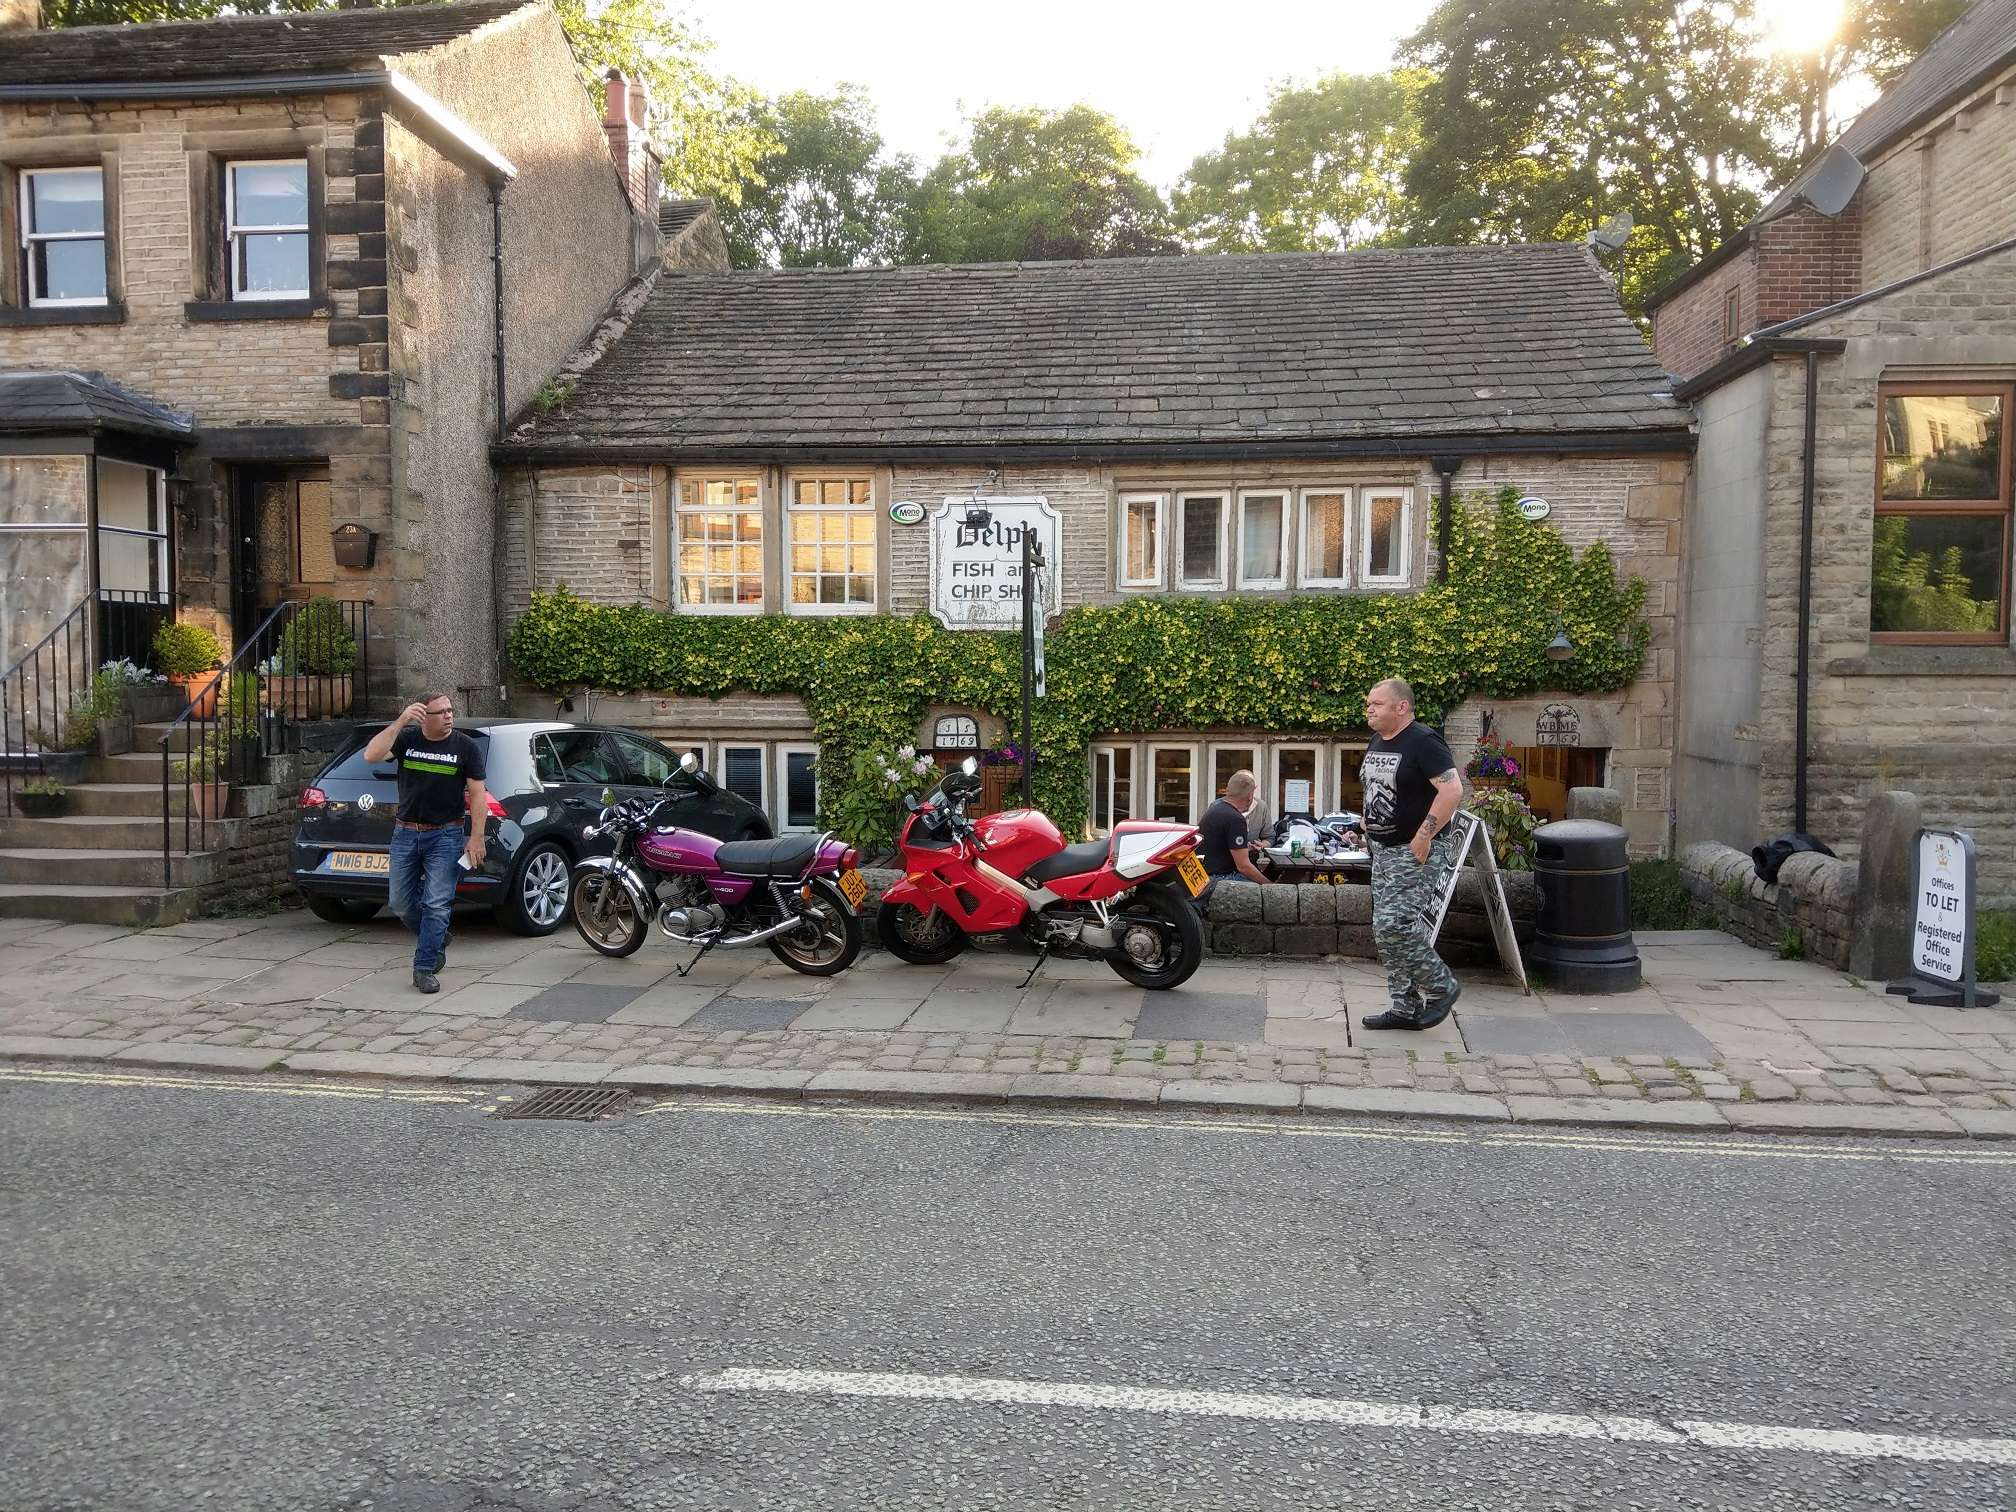 Evening rideout with chips Thursday 7th June Imag0417